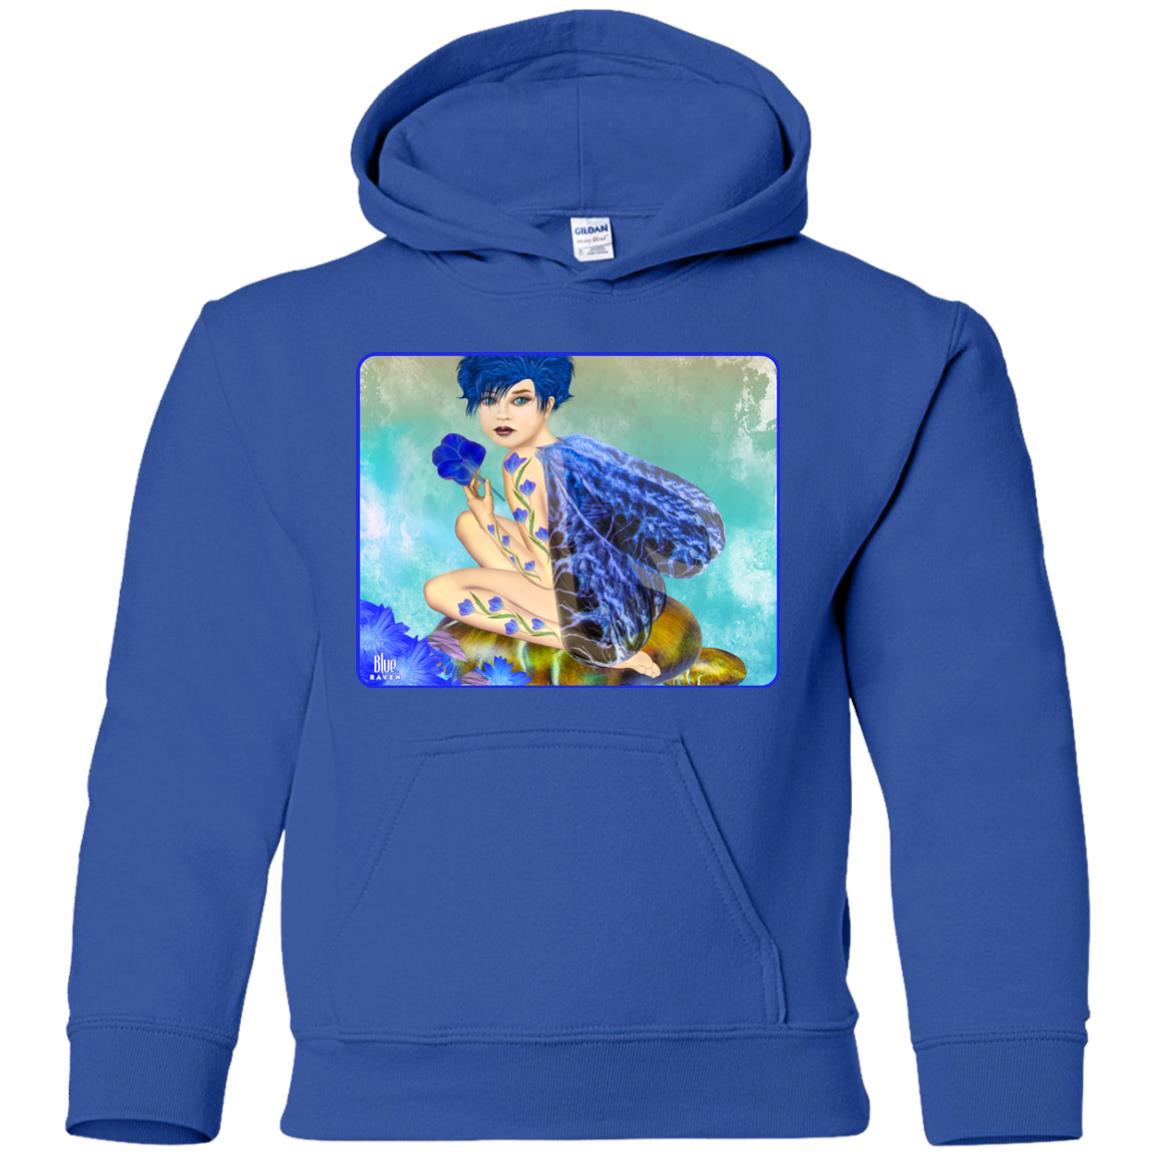 Blue Fairy 2 - Youth Hoodie